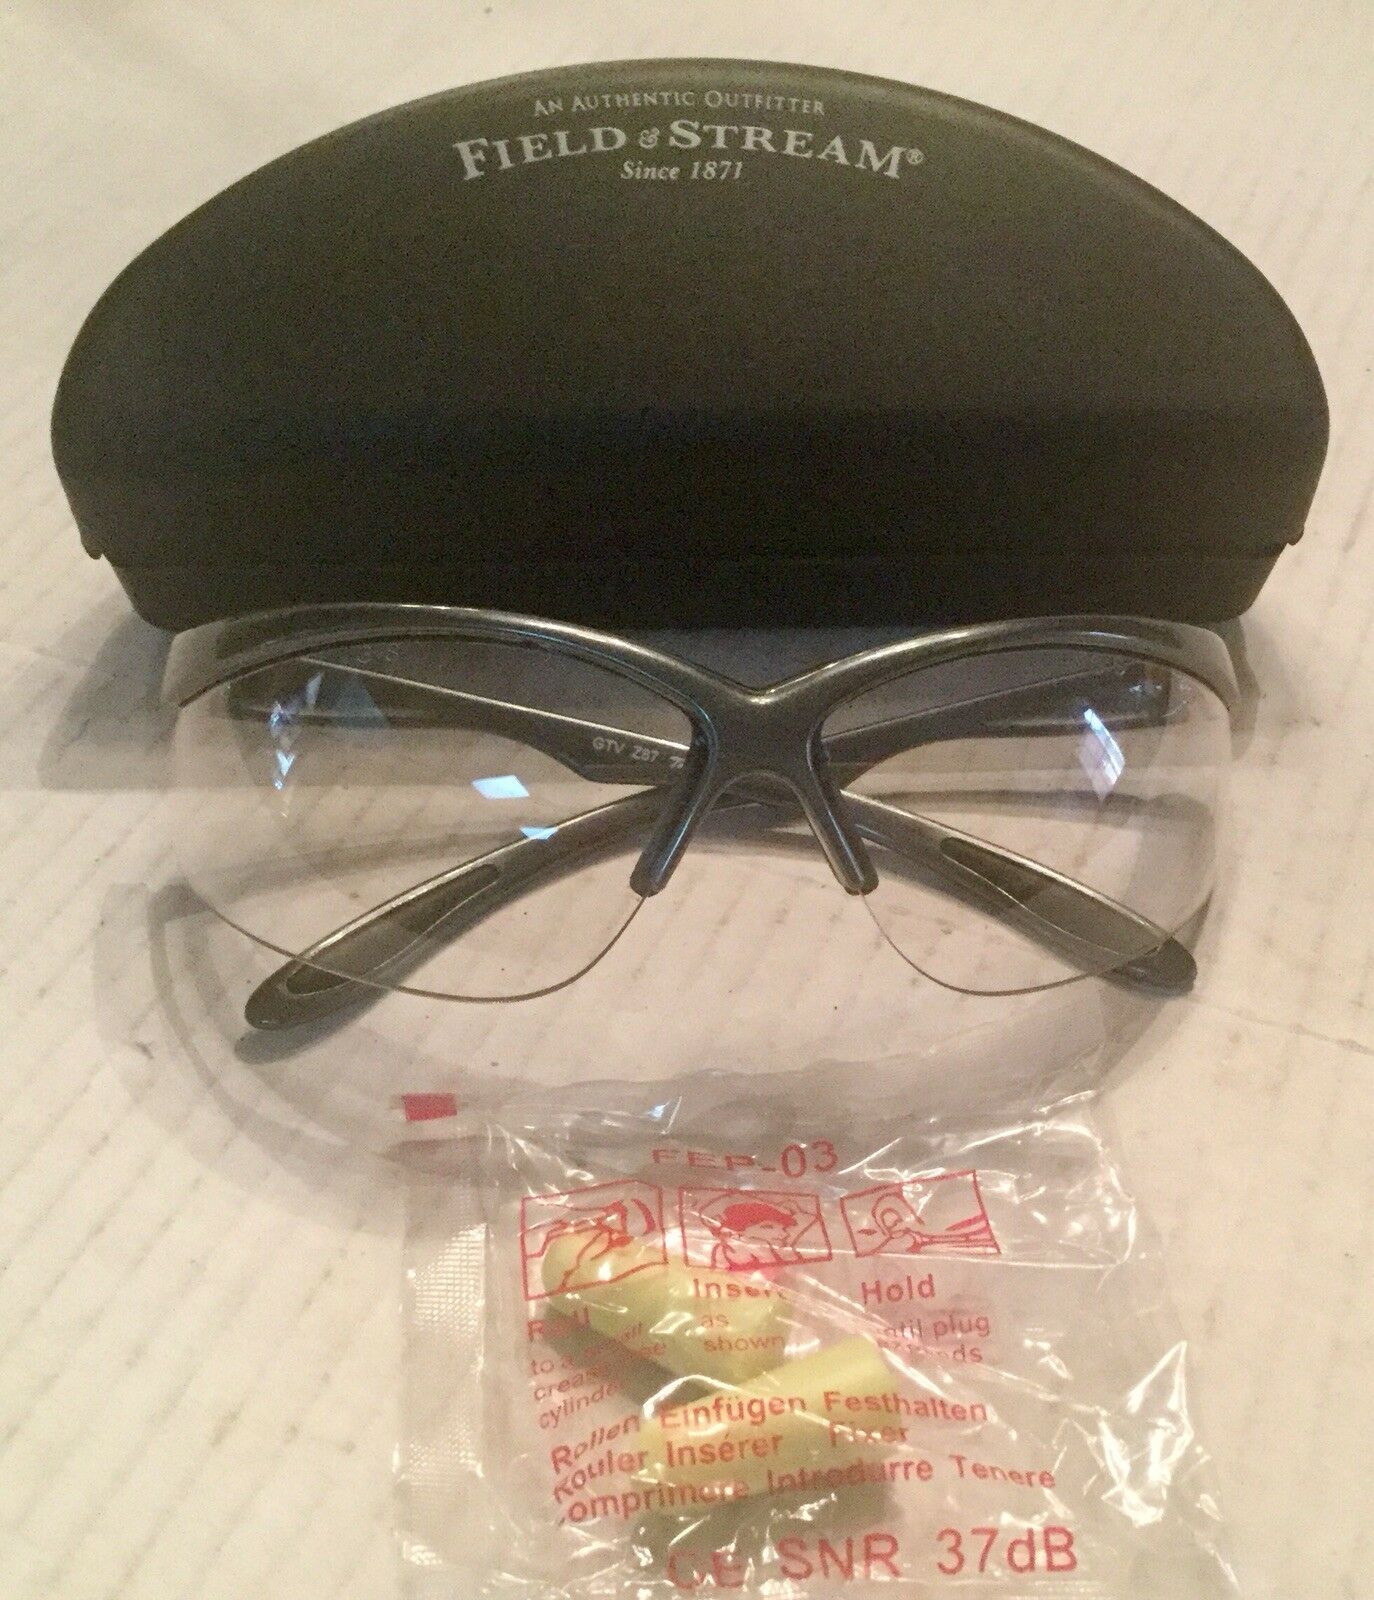 Field & Stream  Shooting Safety Glasses With Ear Plugs and Case